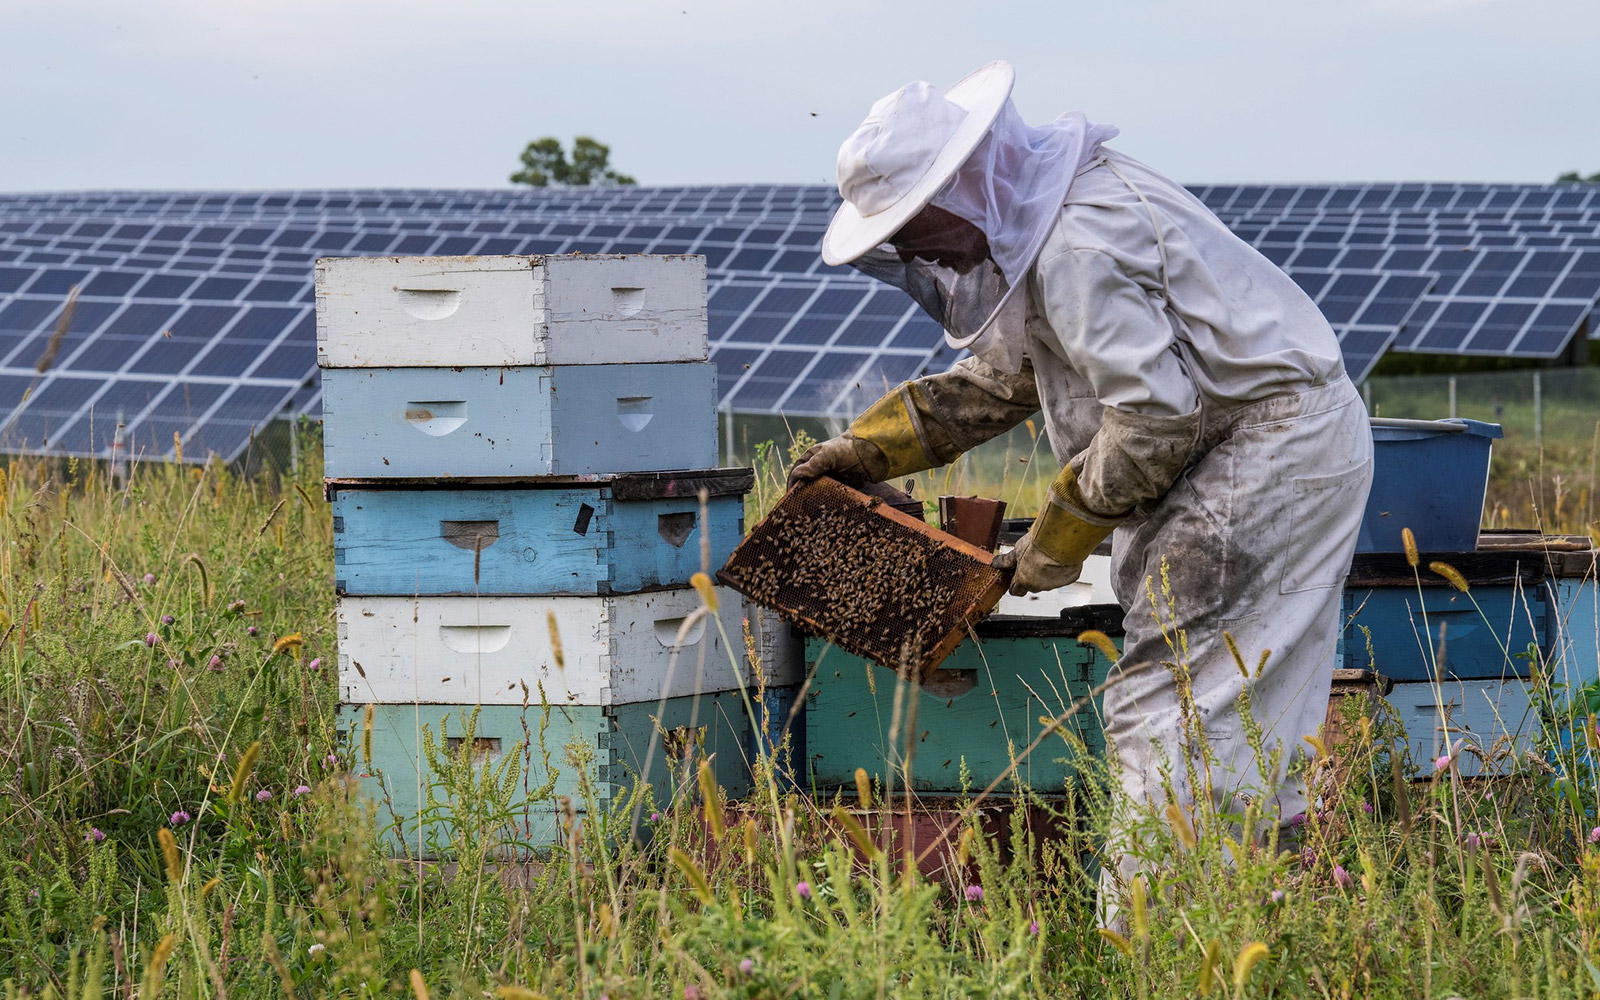 A beekeeper from Bare Honey manages honey bee hives on a pollinator-friendly solar farm.